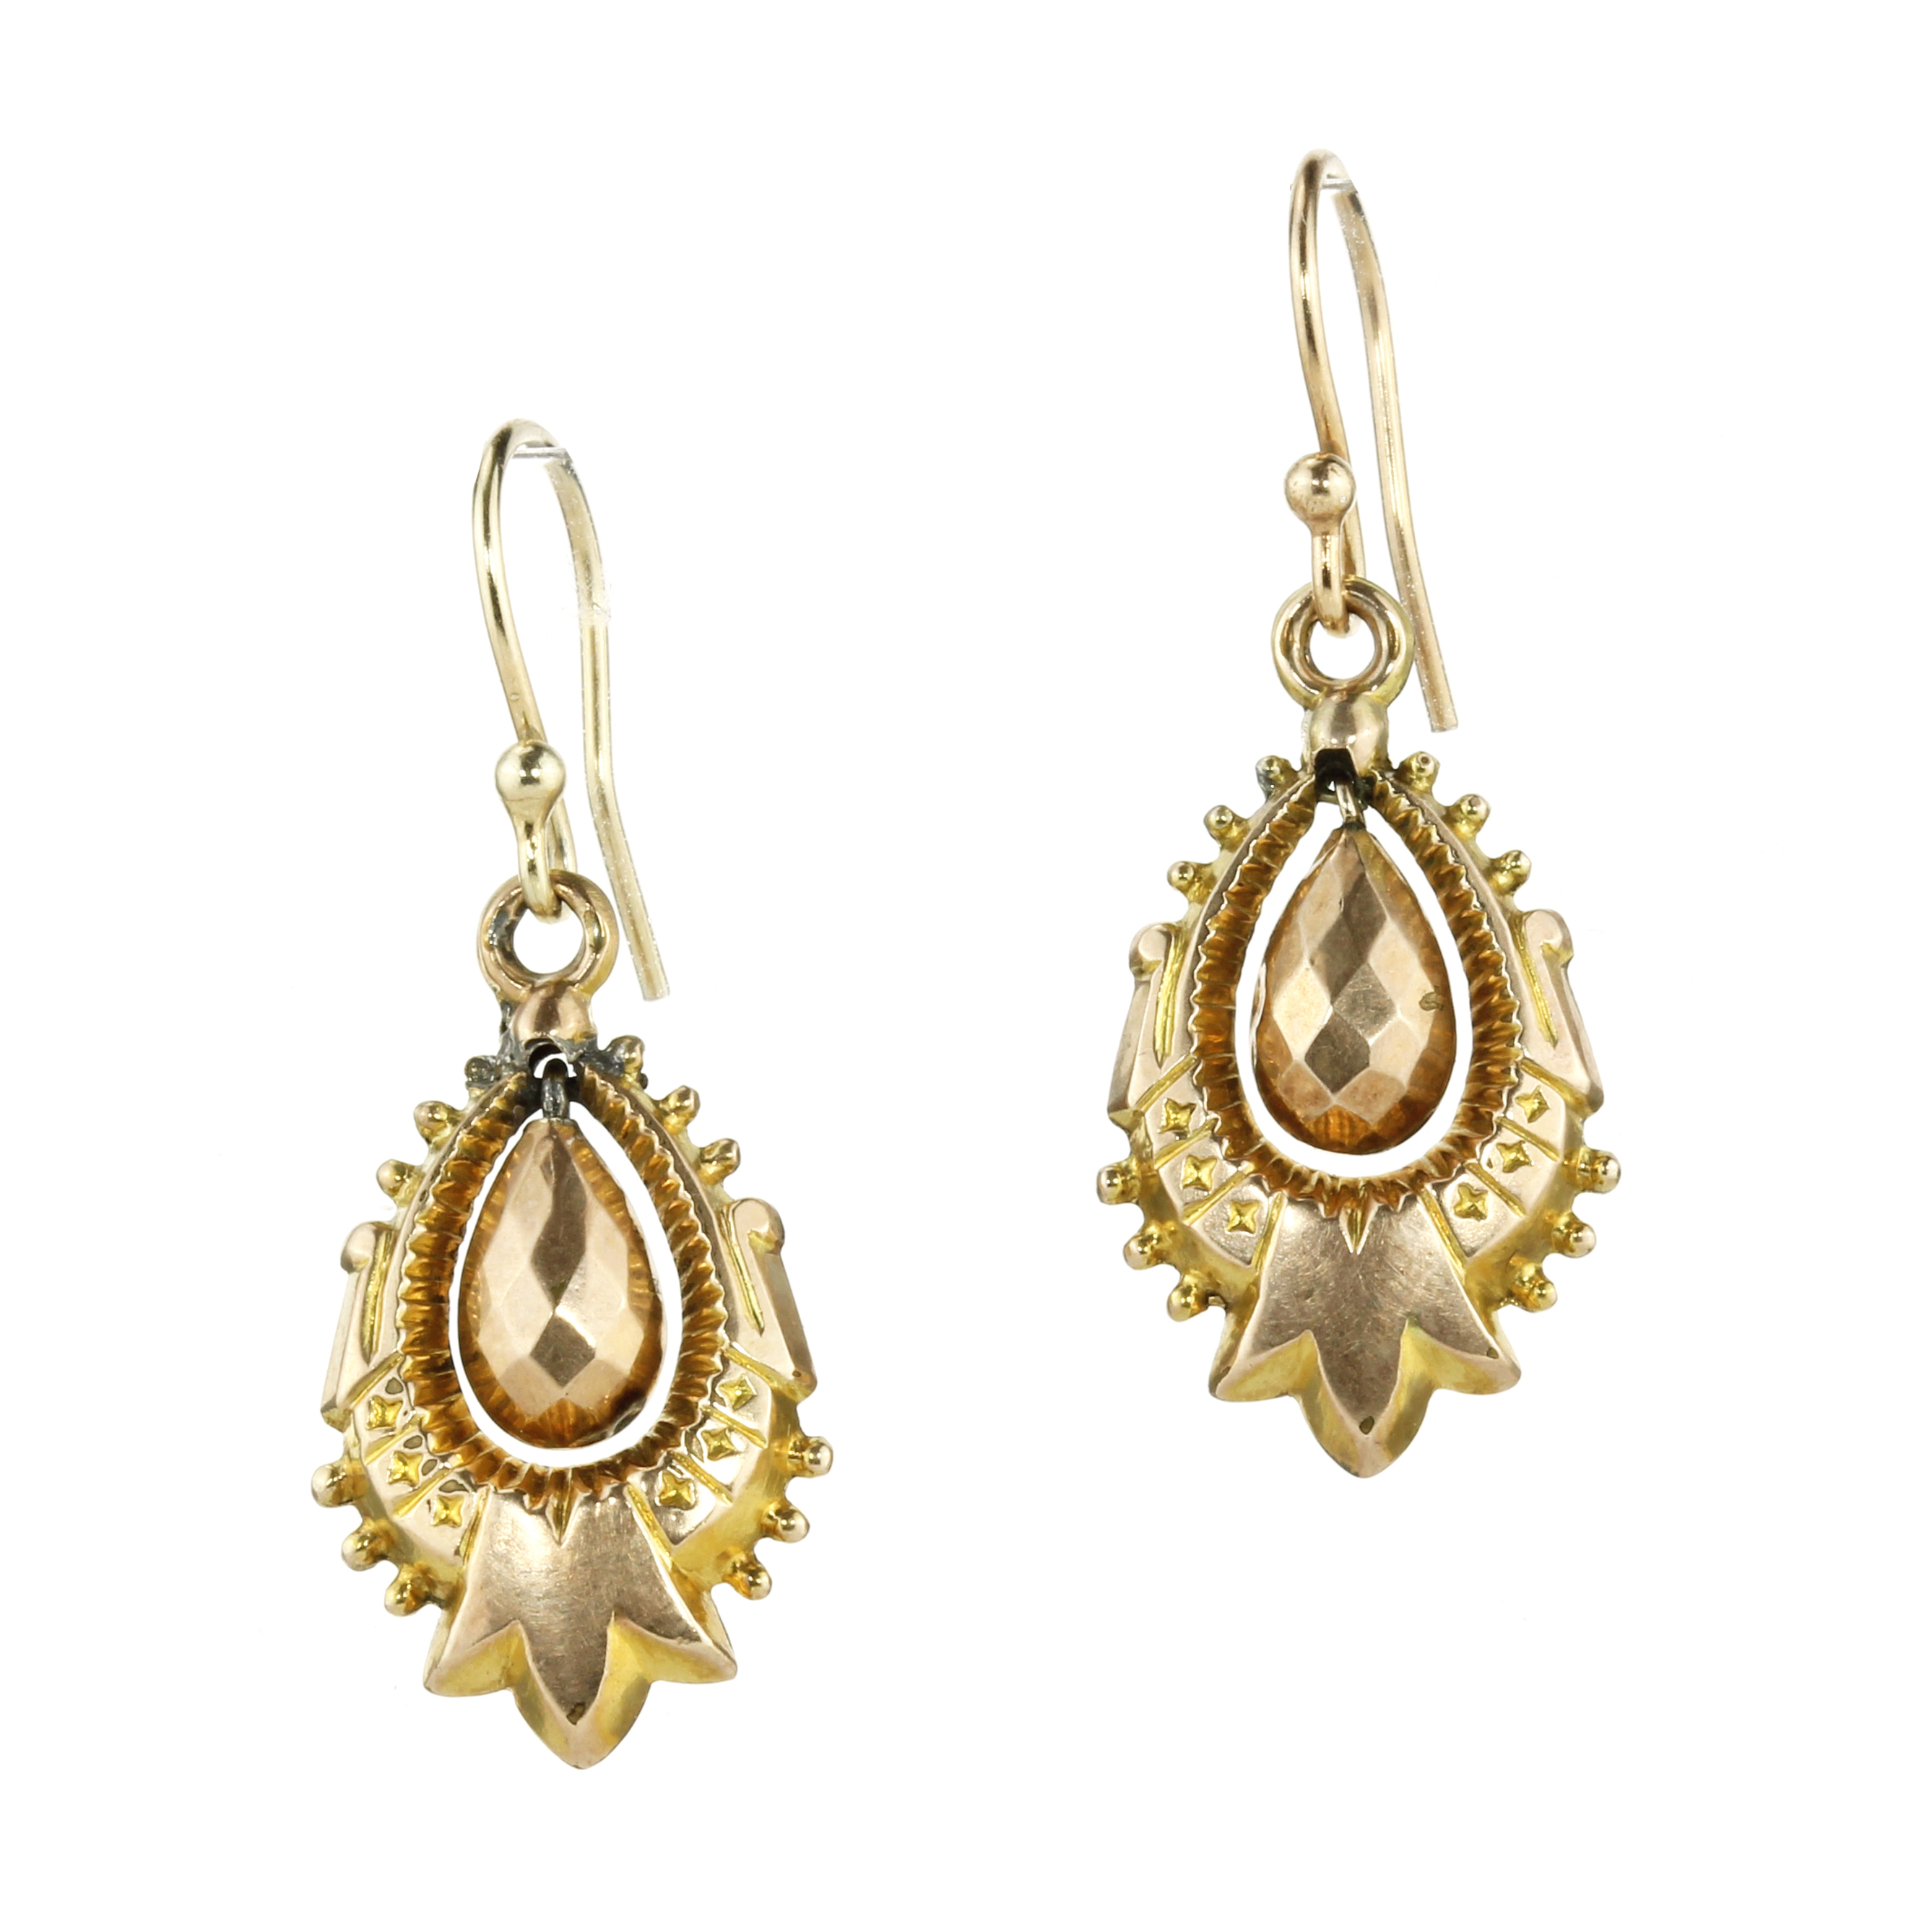 Los 23 - A PAIR OF ANTIQUE ARTICULATED EARRINGS in yellow gold, each designed as a central faceted teardrop